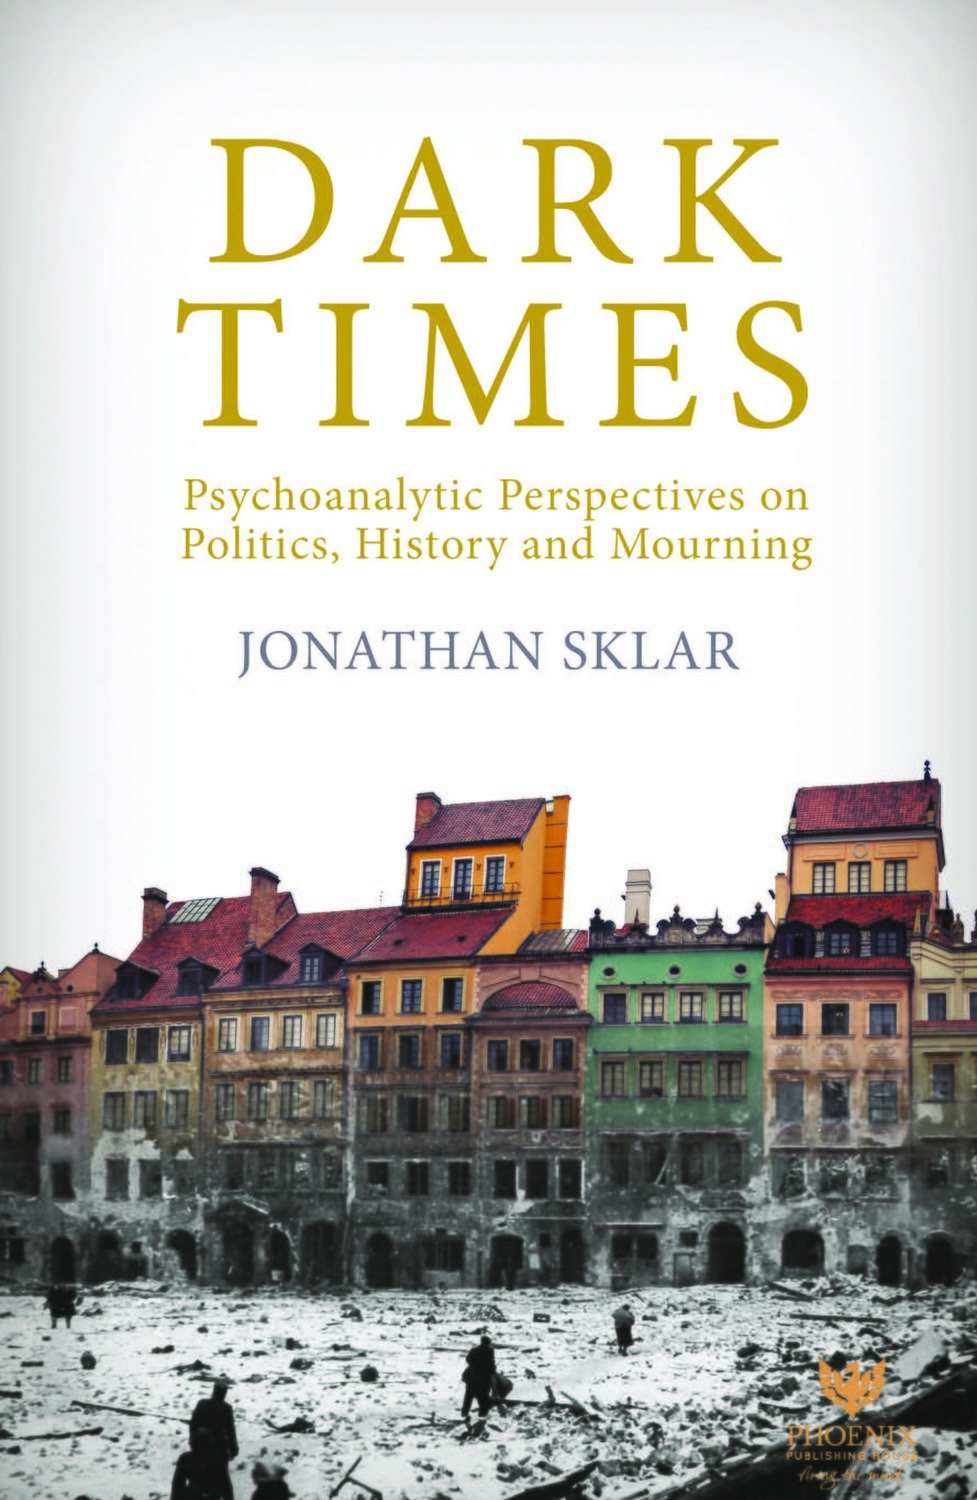 Dark Times: Psychoanalytic Perspectives on Politics, History and Mourning